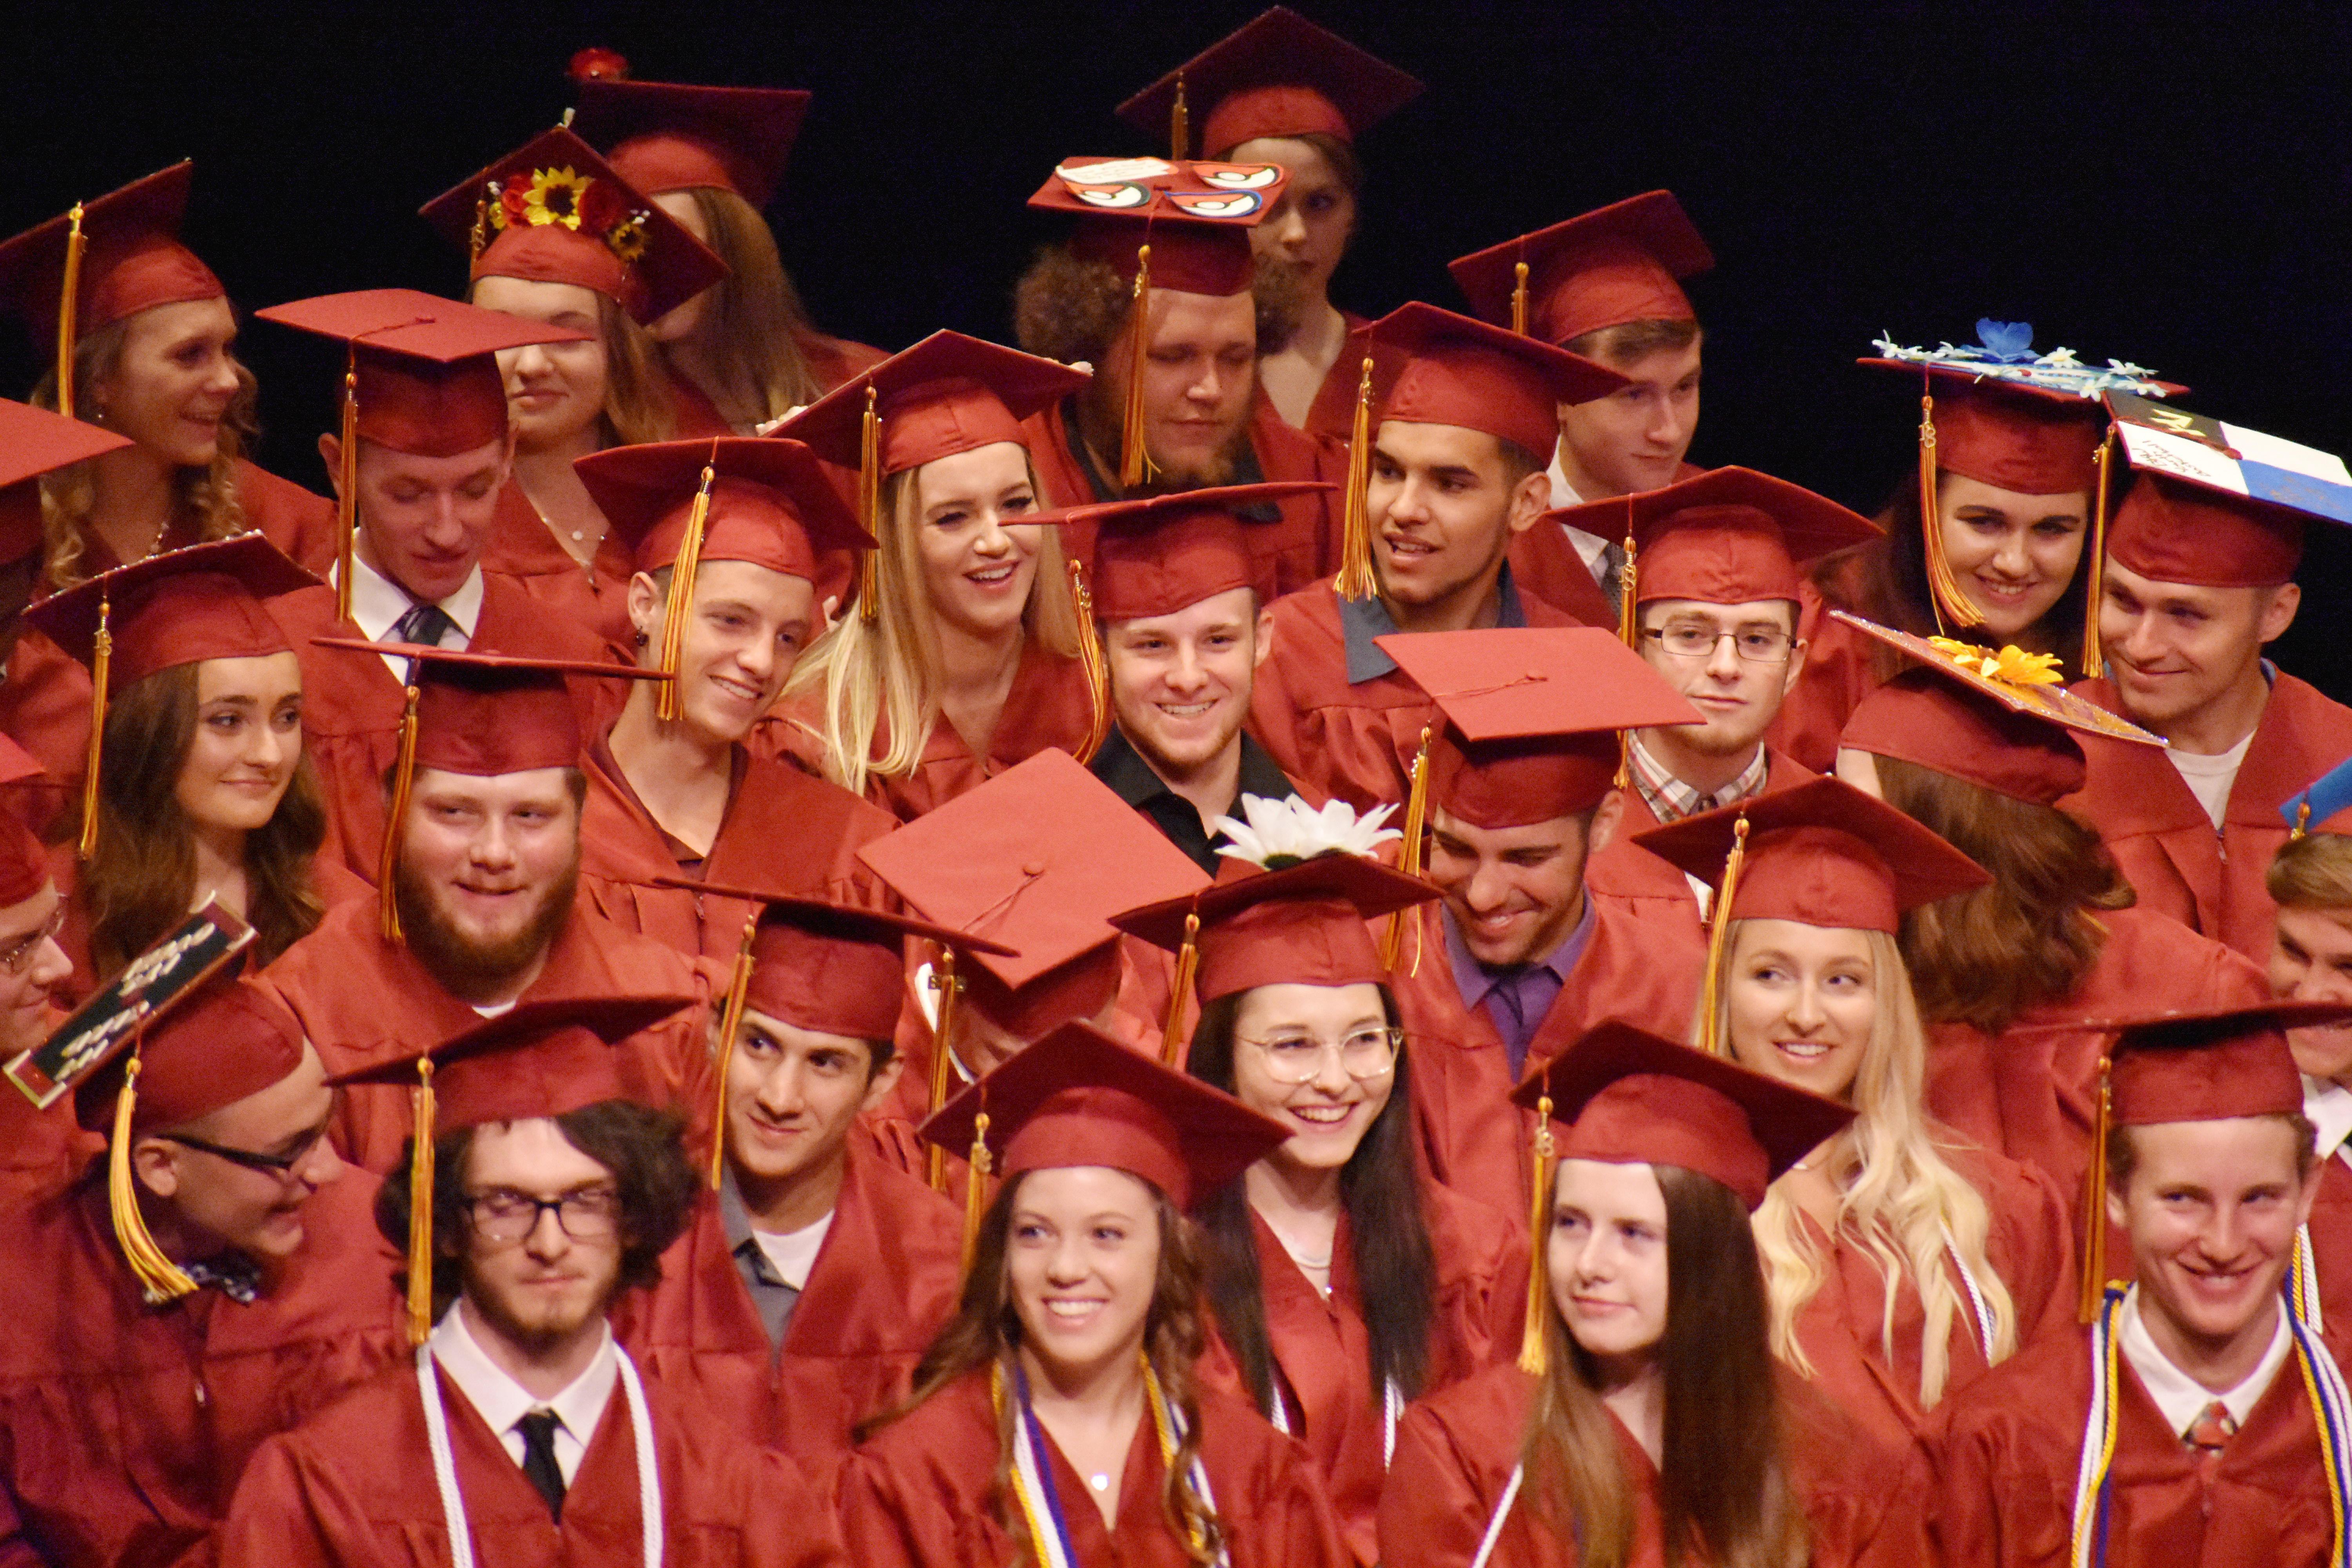 large group of graduates in their red caps and gowns